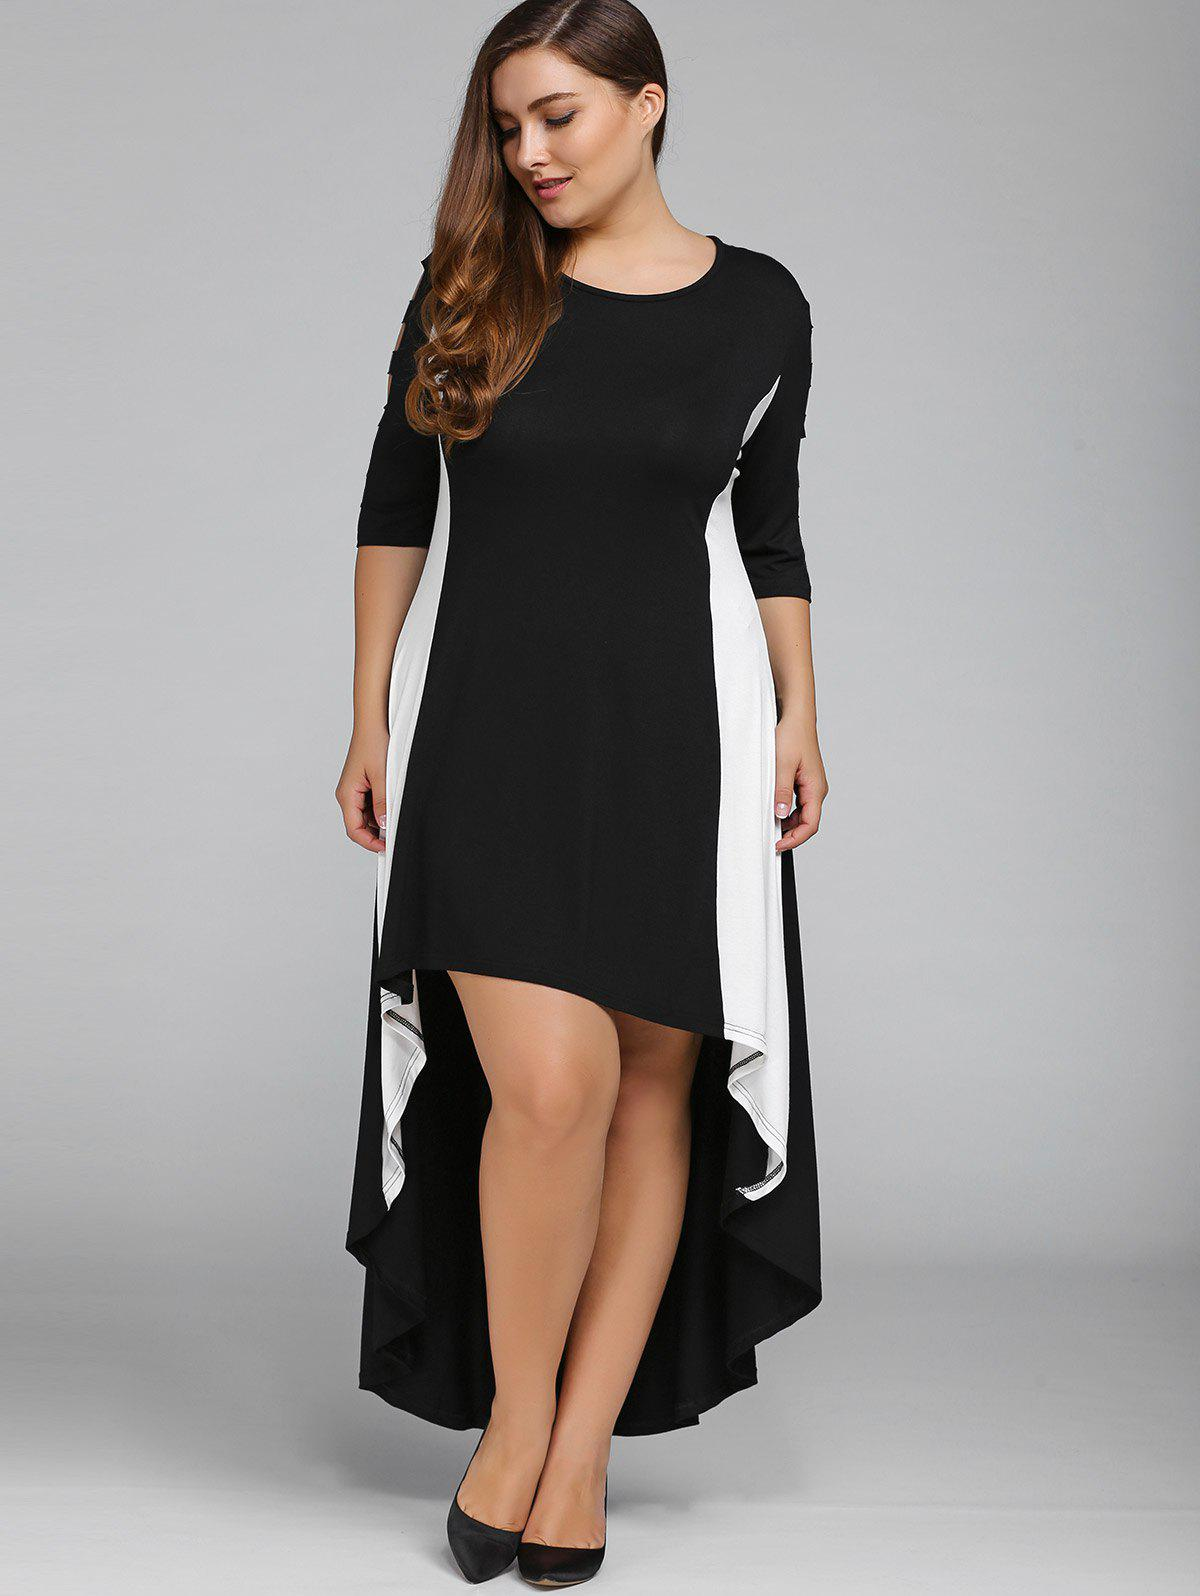 Color Block Plus Size High Low Maxi Carpet Prom DressWOMEN<br><br>Size: 2XL; Color: BLACK; Style: Brief; Material: Polyester; Silhouette: Asymmetrical; Dresses Length: Ankle-Length; Neckline: Jewel Neck; Sleeve Length: Long Sleeves; Pattern Type: Others; With Belt: No; Season: Fall,Spring; Weight: 0.400kg; Package Contents: 1 x Dress;